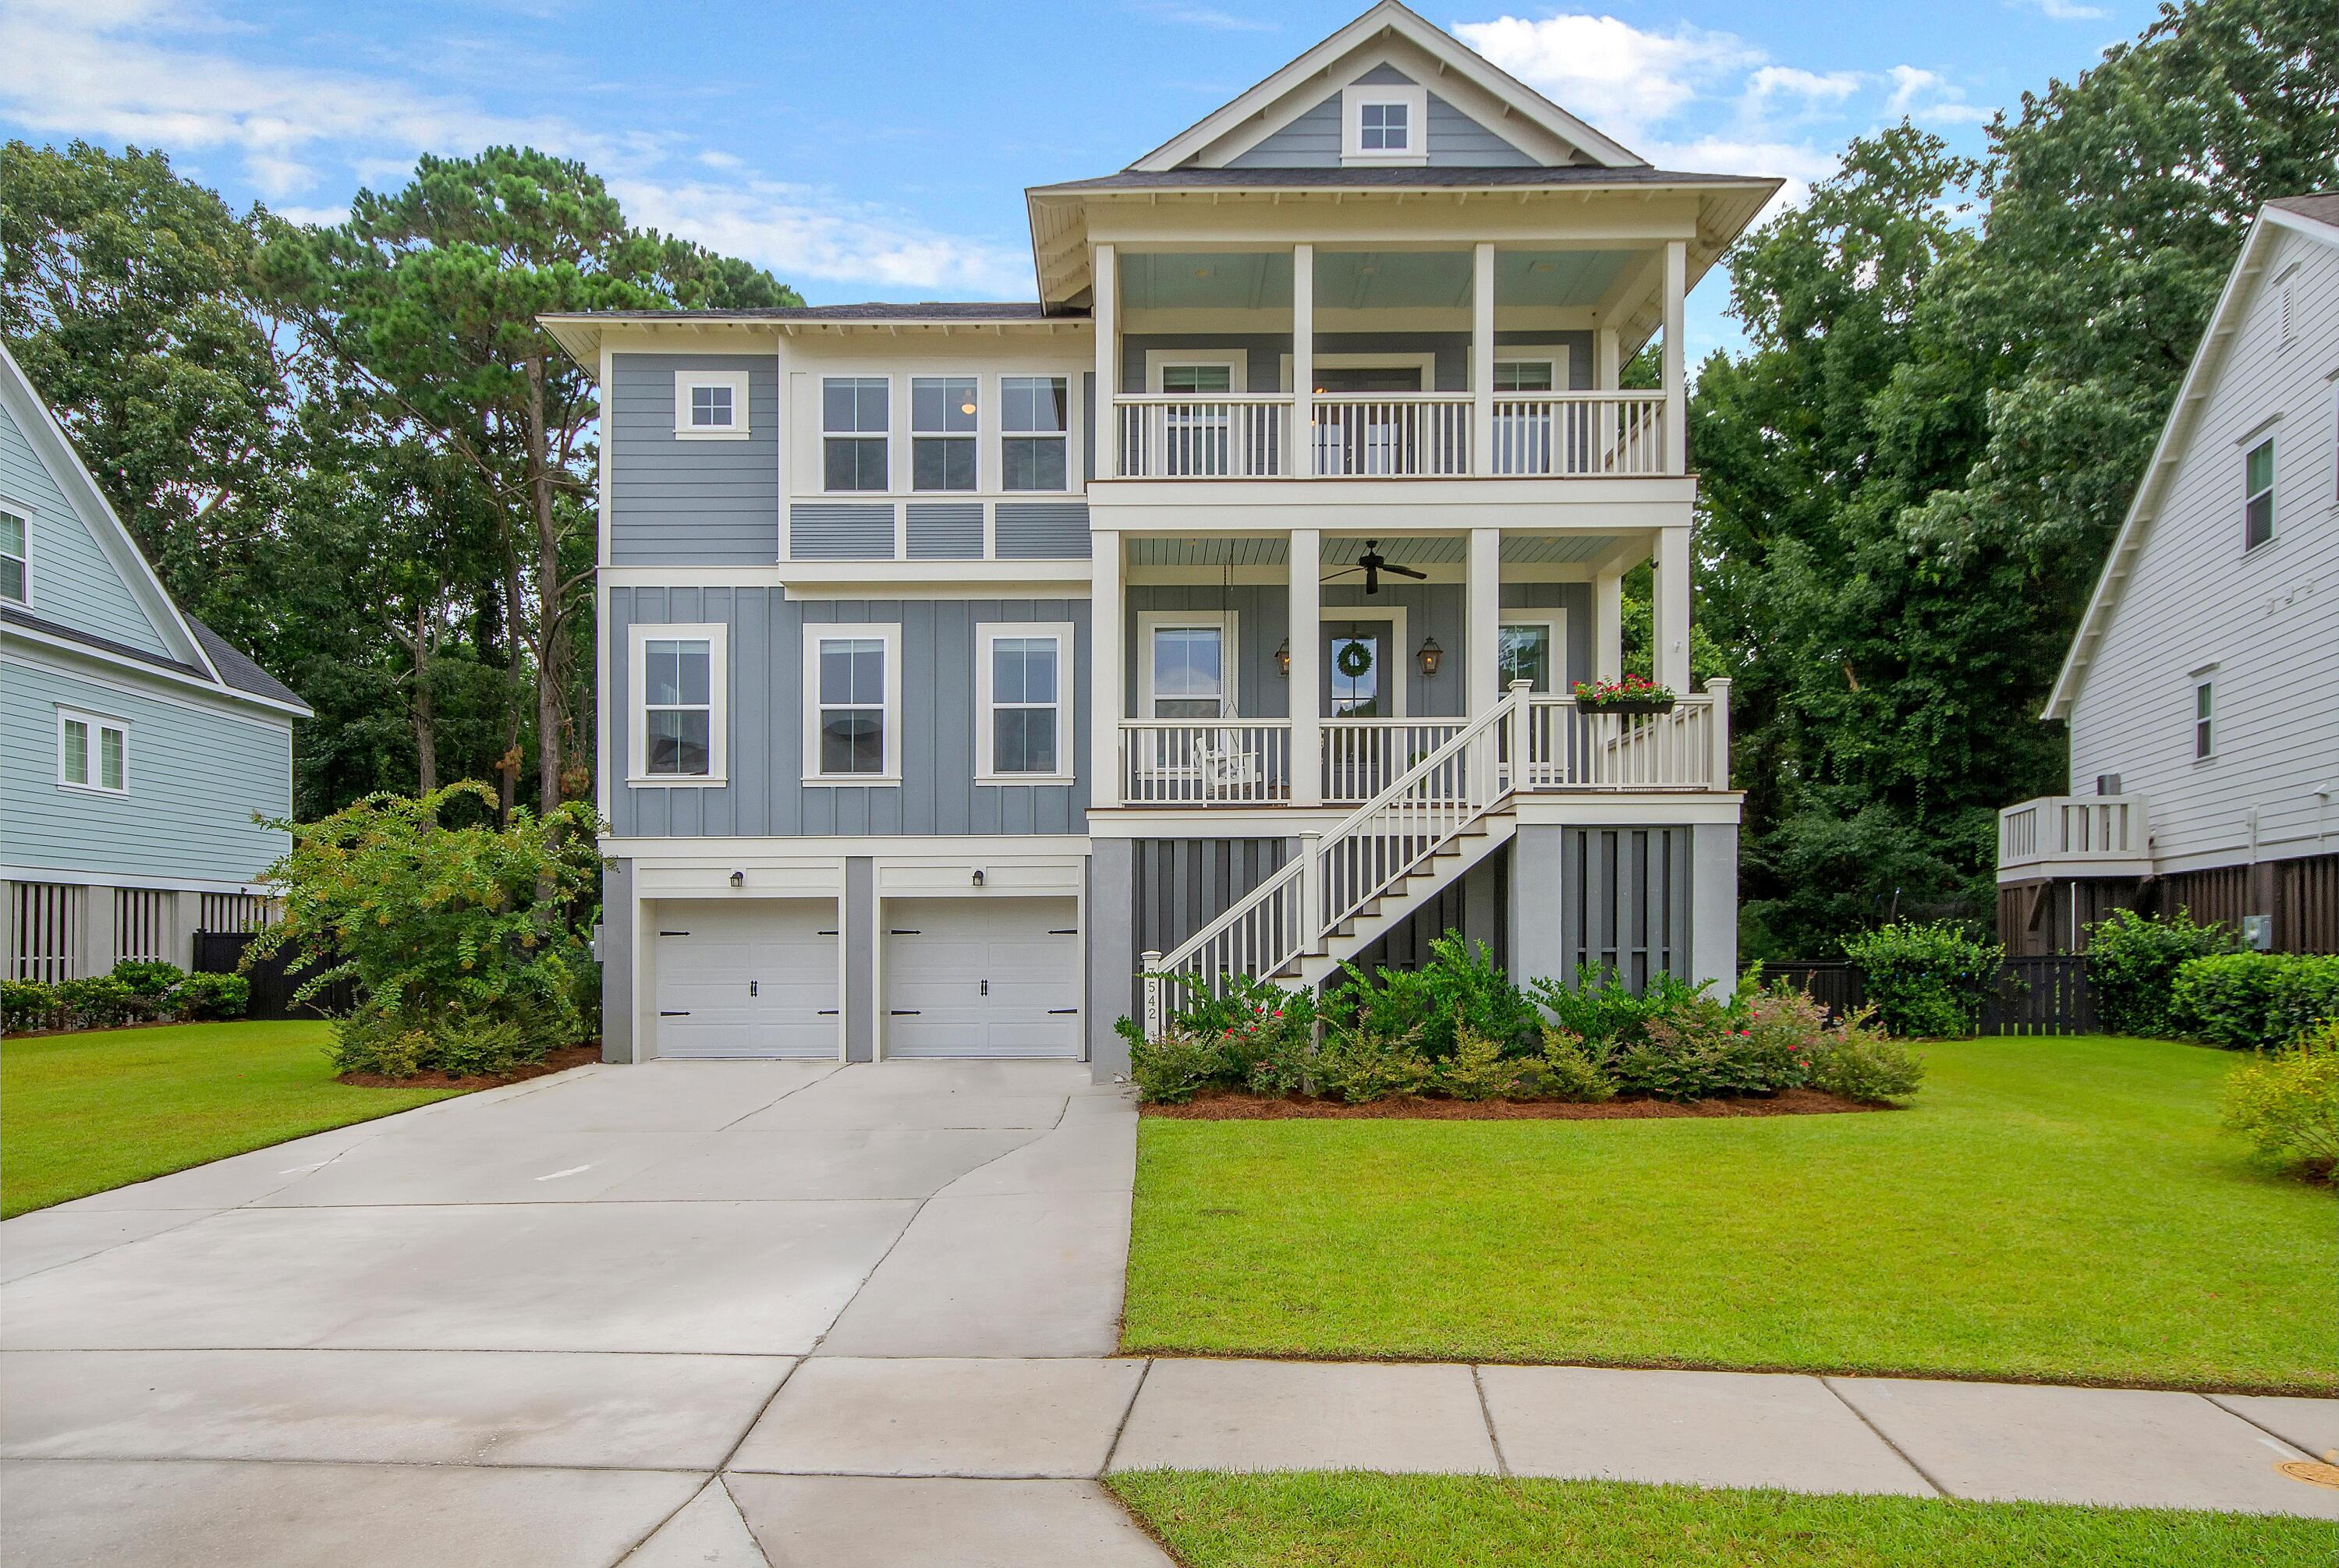 Stratton by the Sound Homes For Sale - 3542 Saltflat, Mount Pleasant, SC - 21